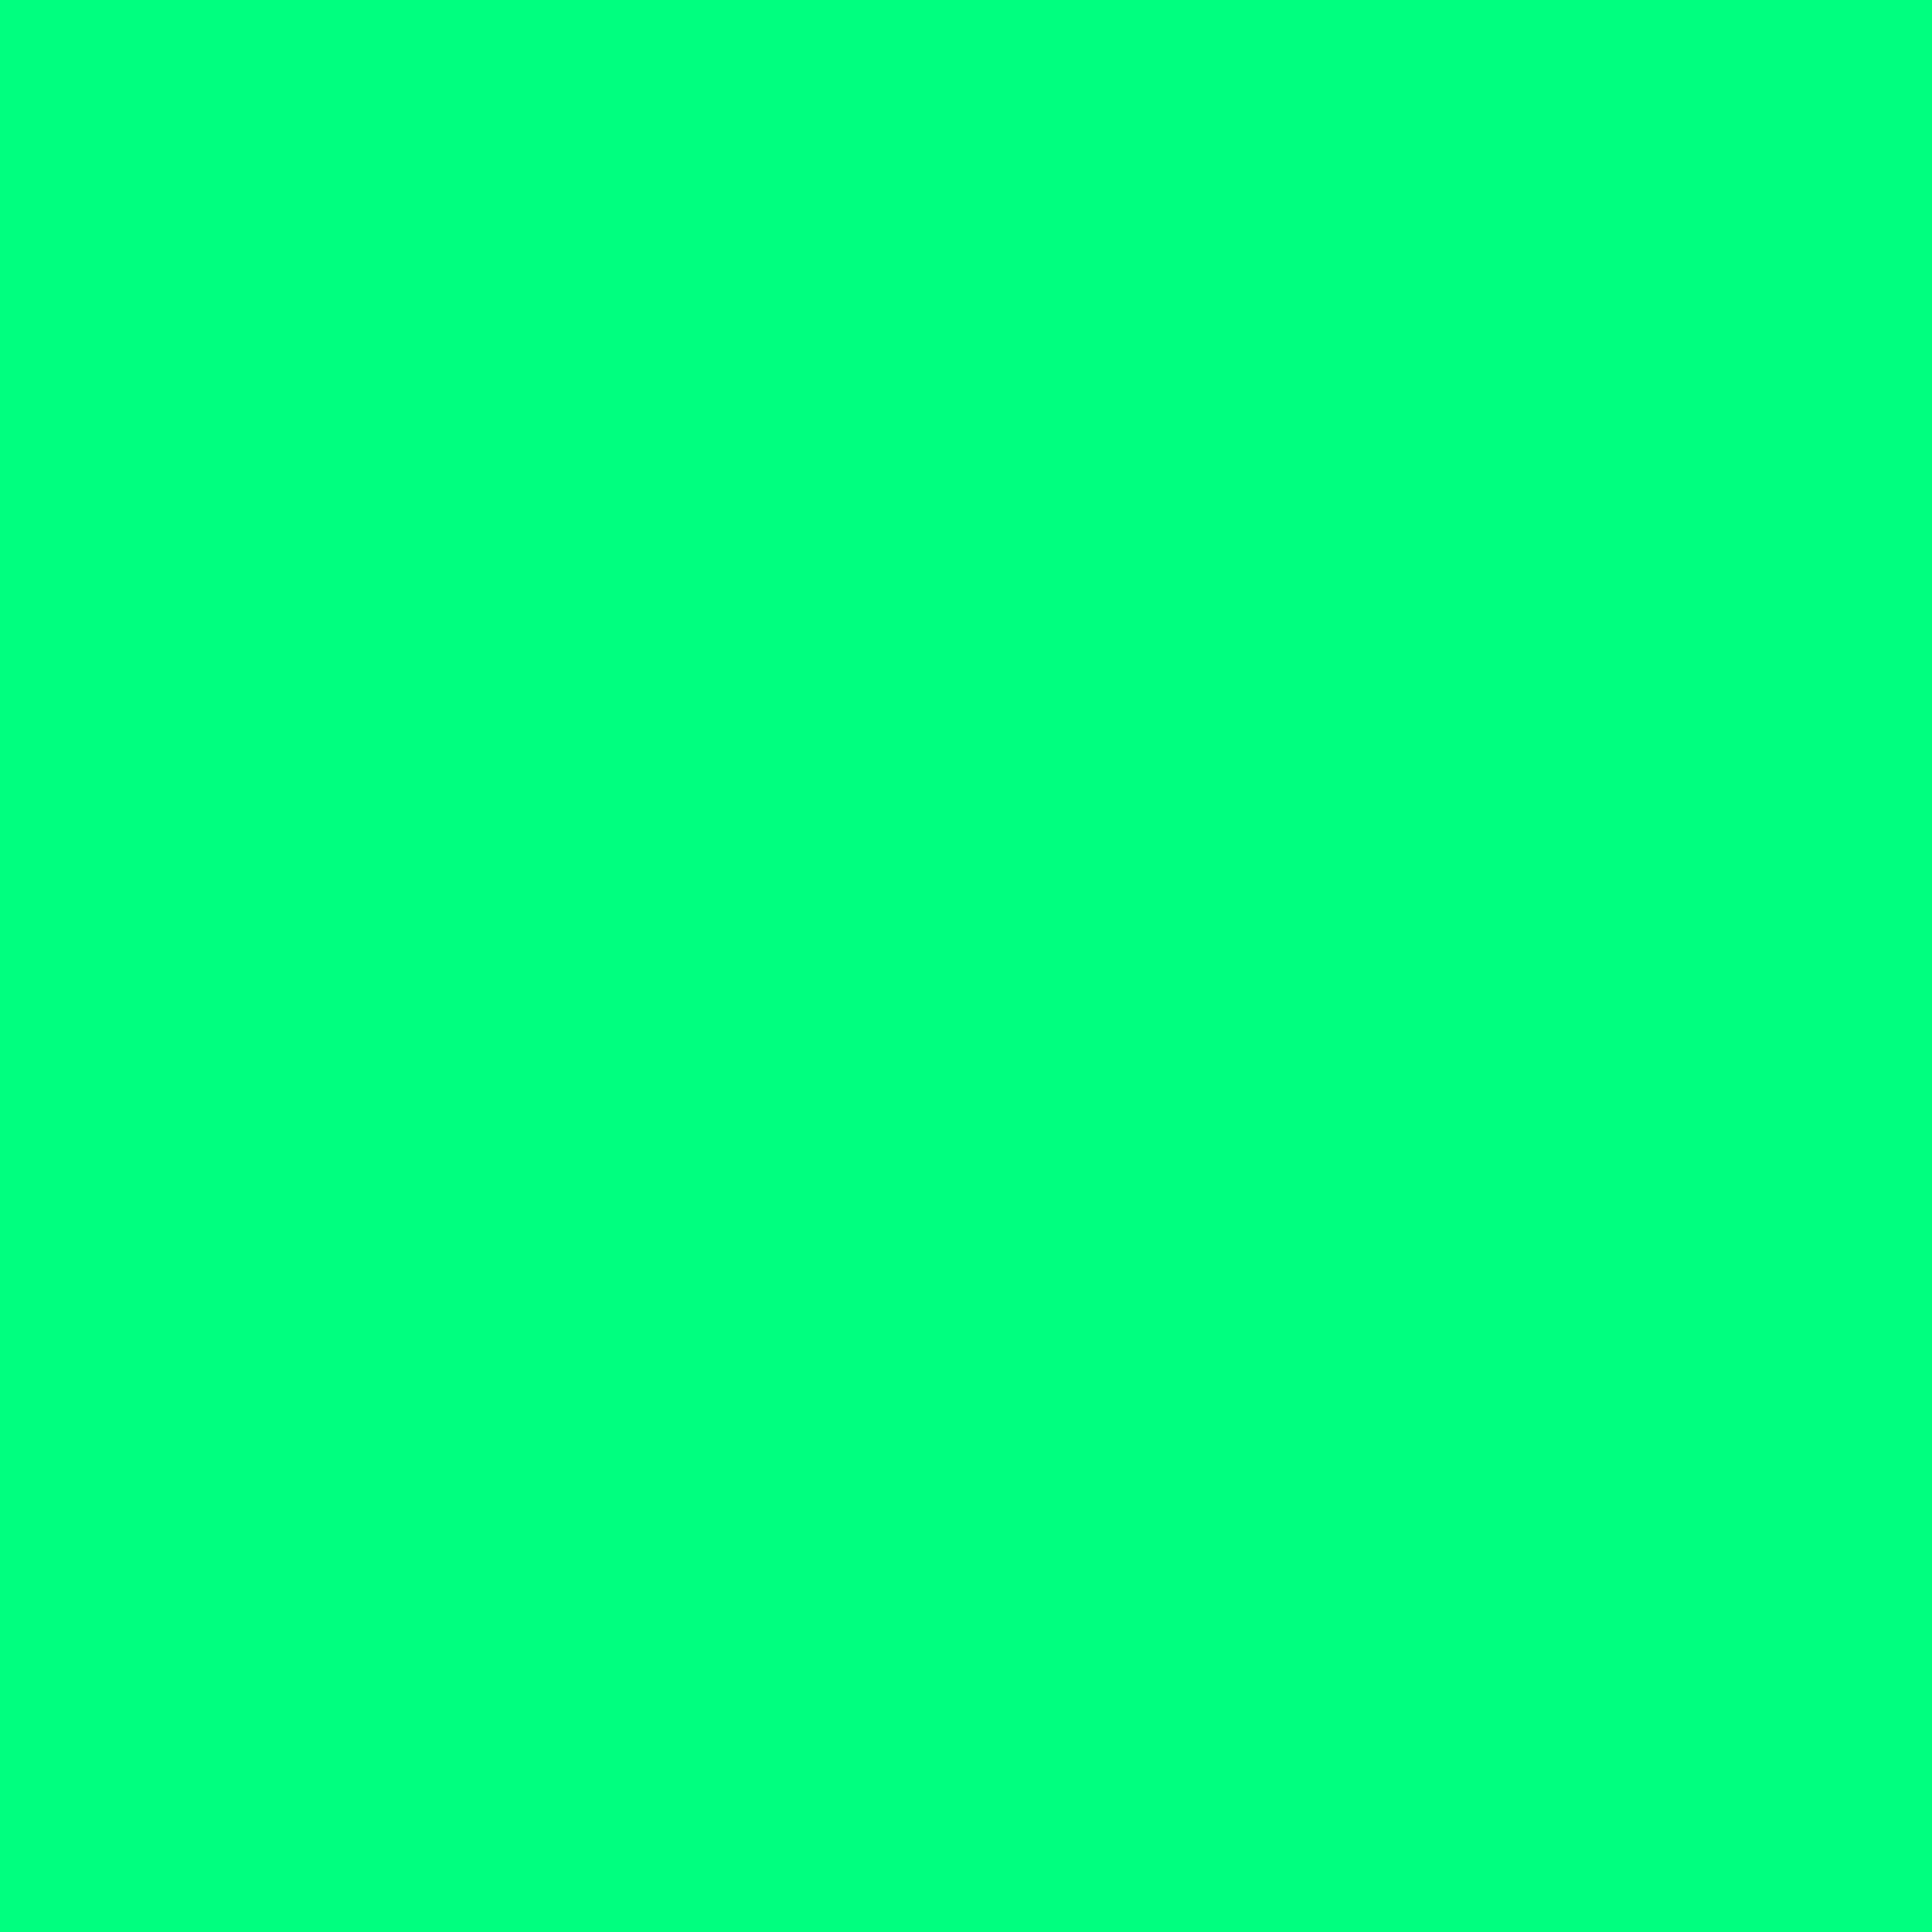 2048x2048 Guppie Green Solid Color Background